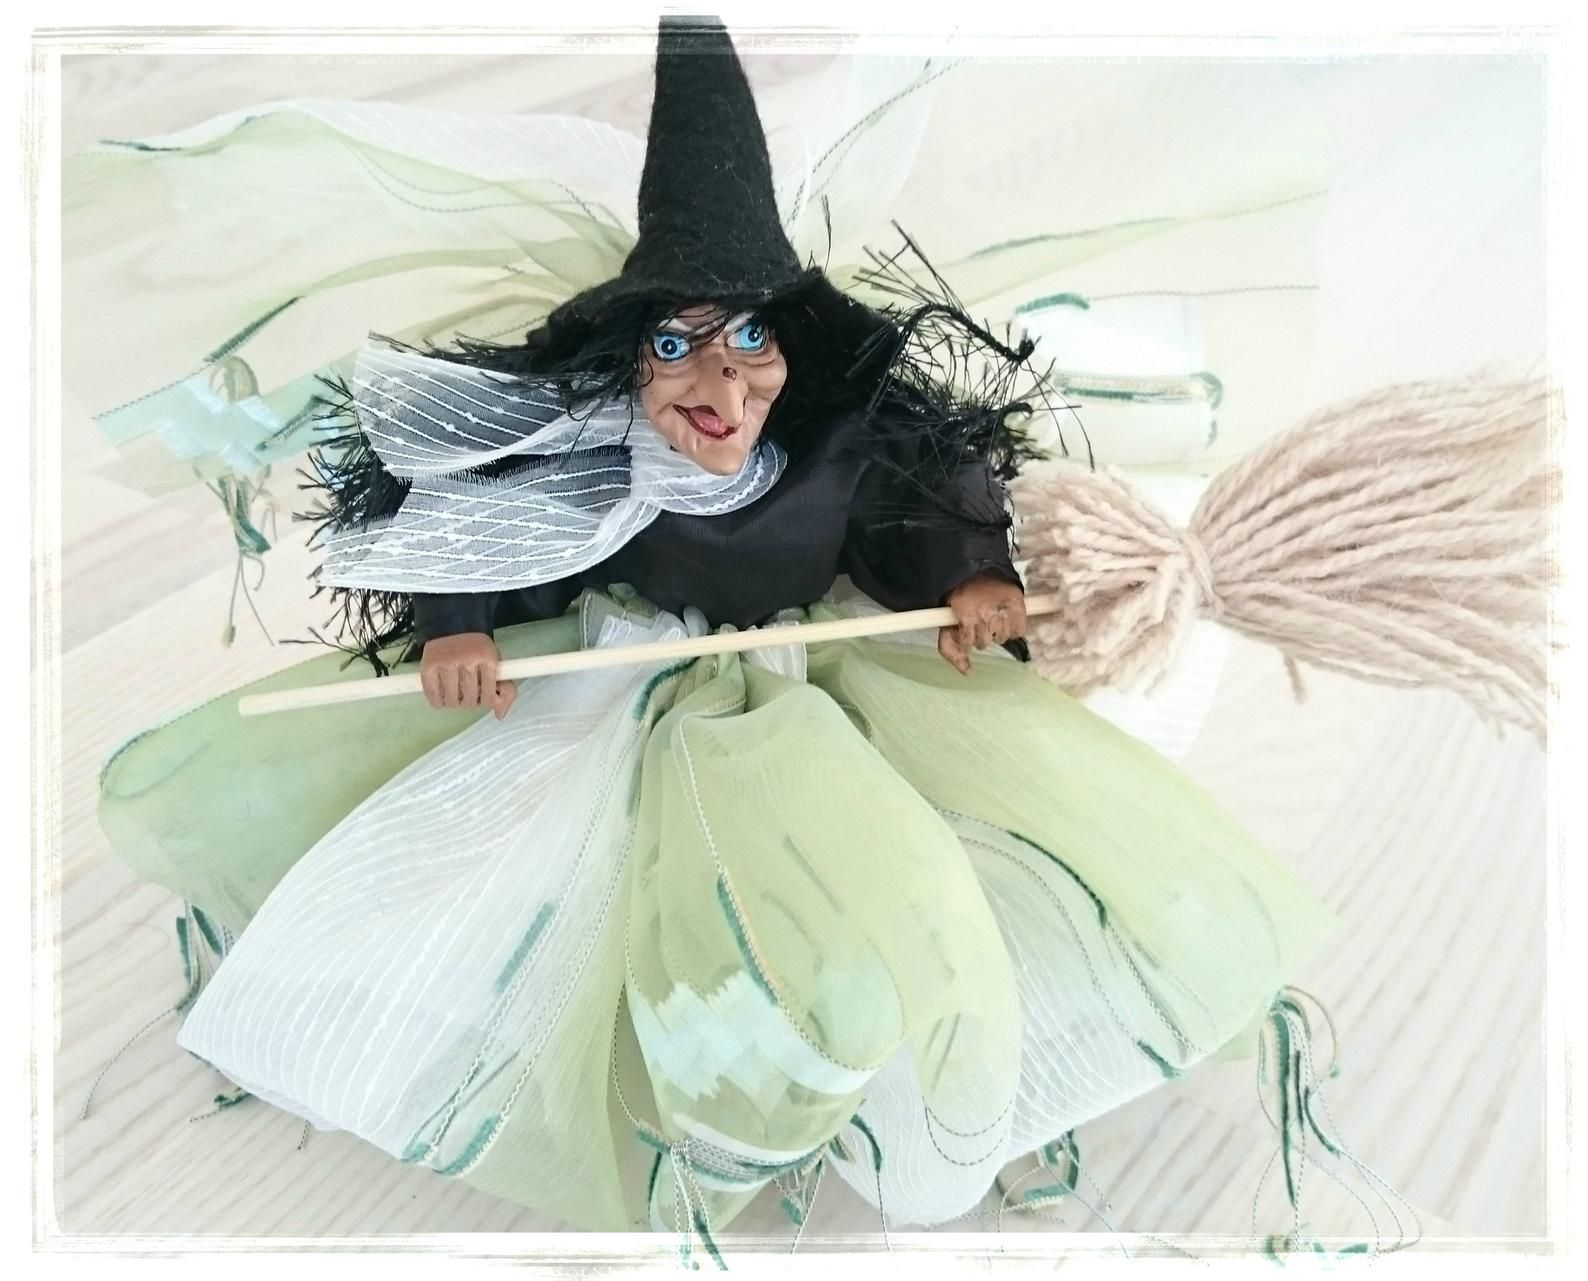 A German Kitchen Witch Brings Good Luck to Your Kitchen! #witchcottage Witch Figurine Hag with Broom, Kitchen Witch, Kitchen witch Doll, Hedge Witch, Flying witch, Germany witch, Cottage witch, Farmhouse witch #witchcottage